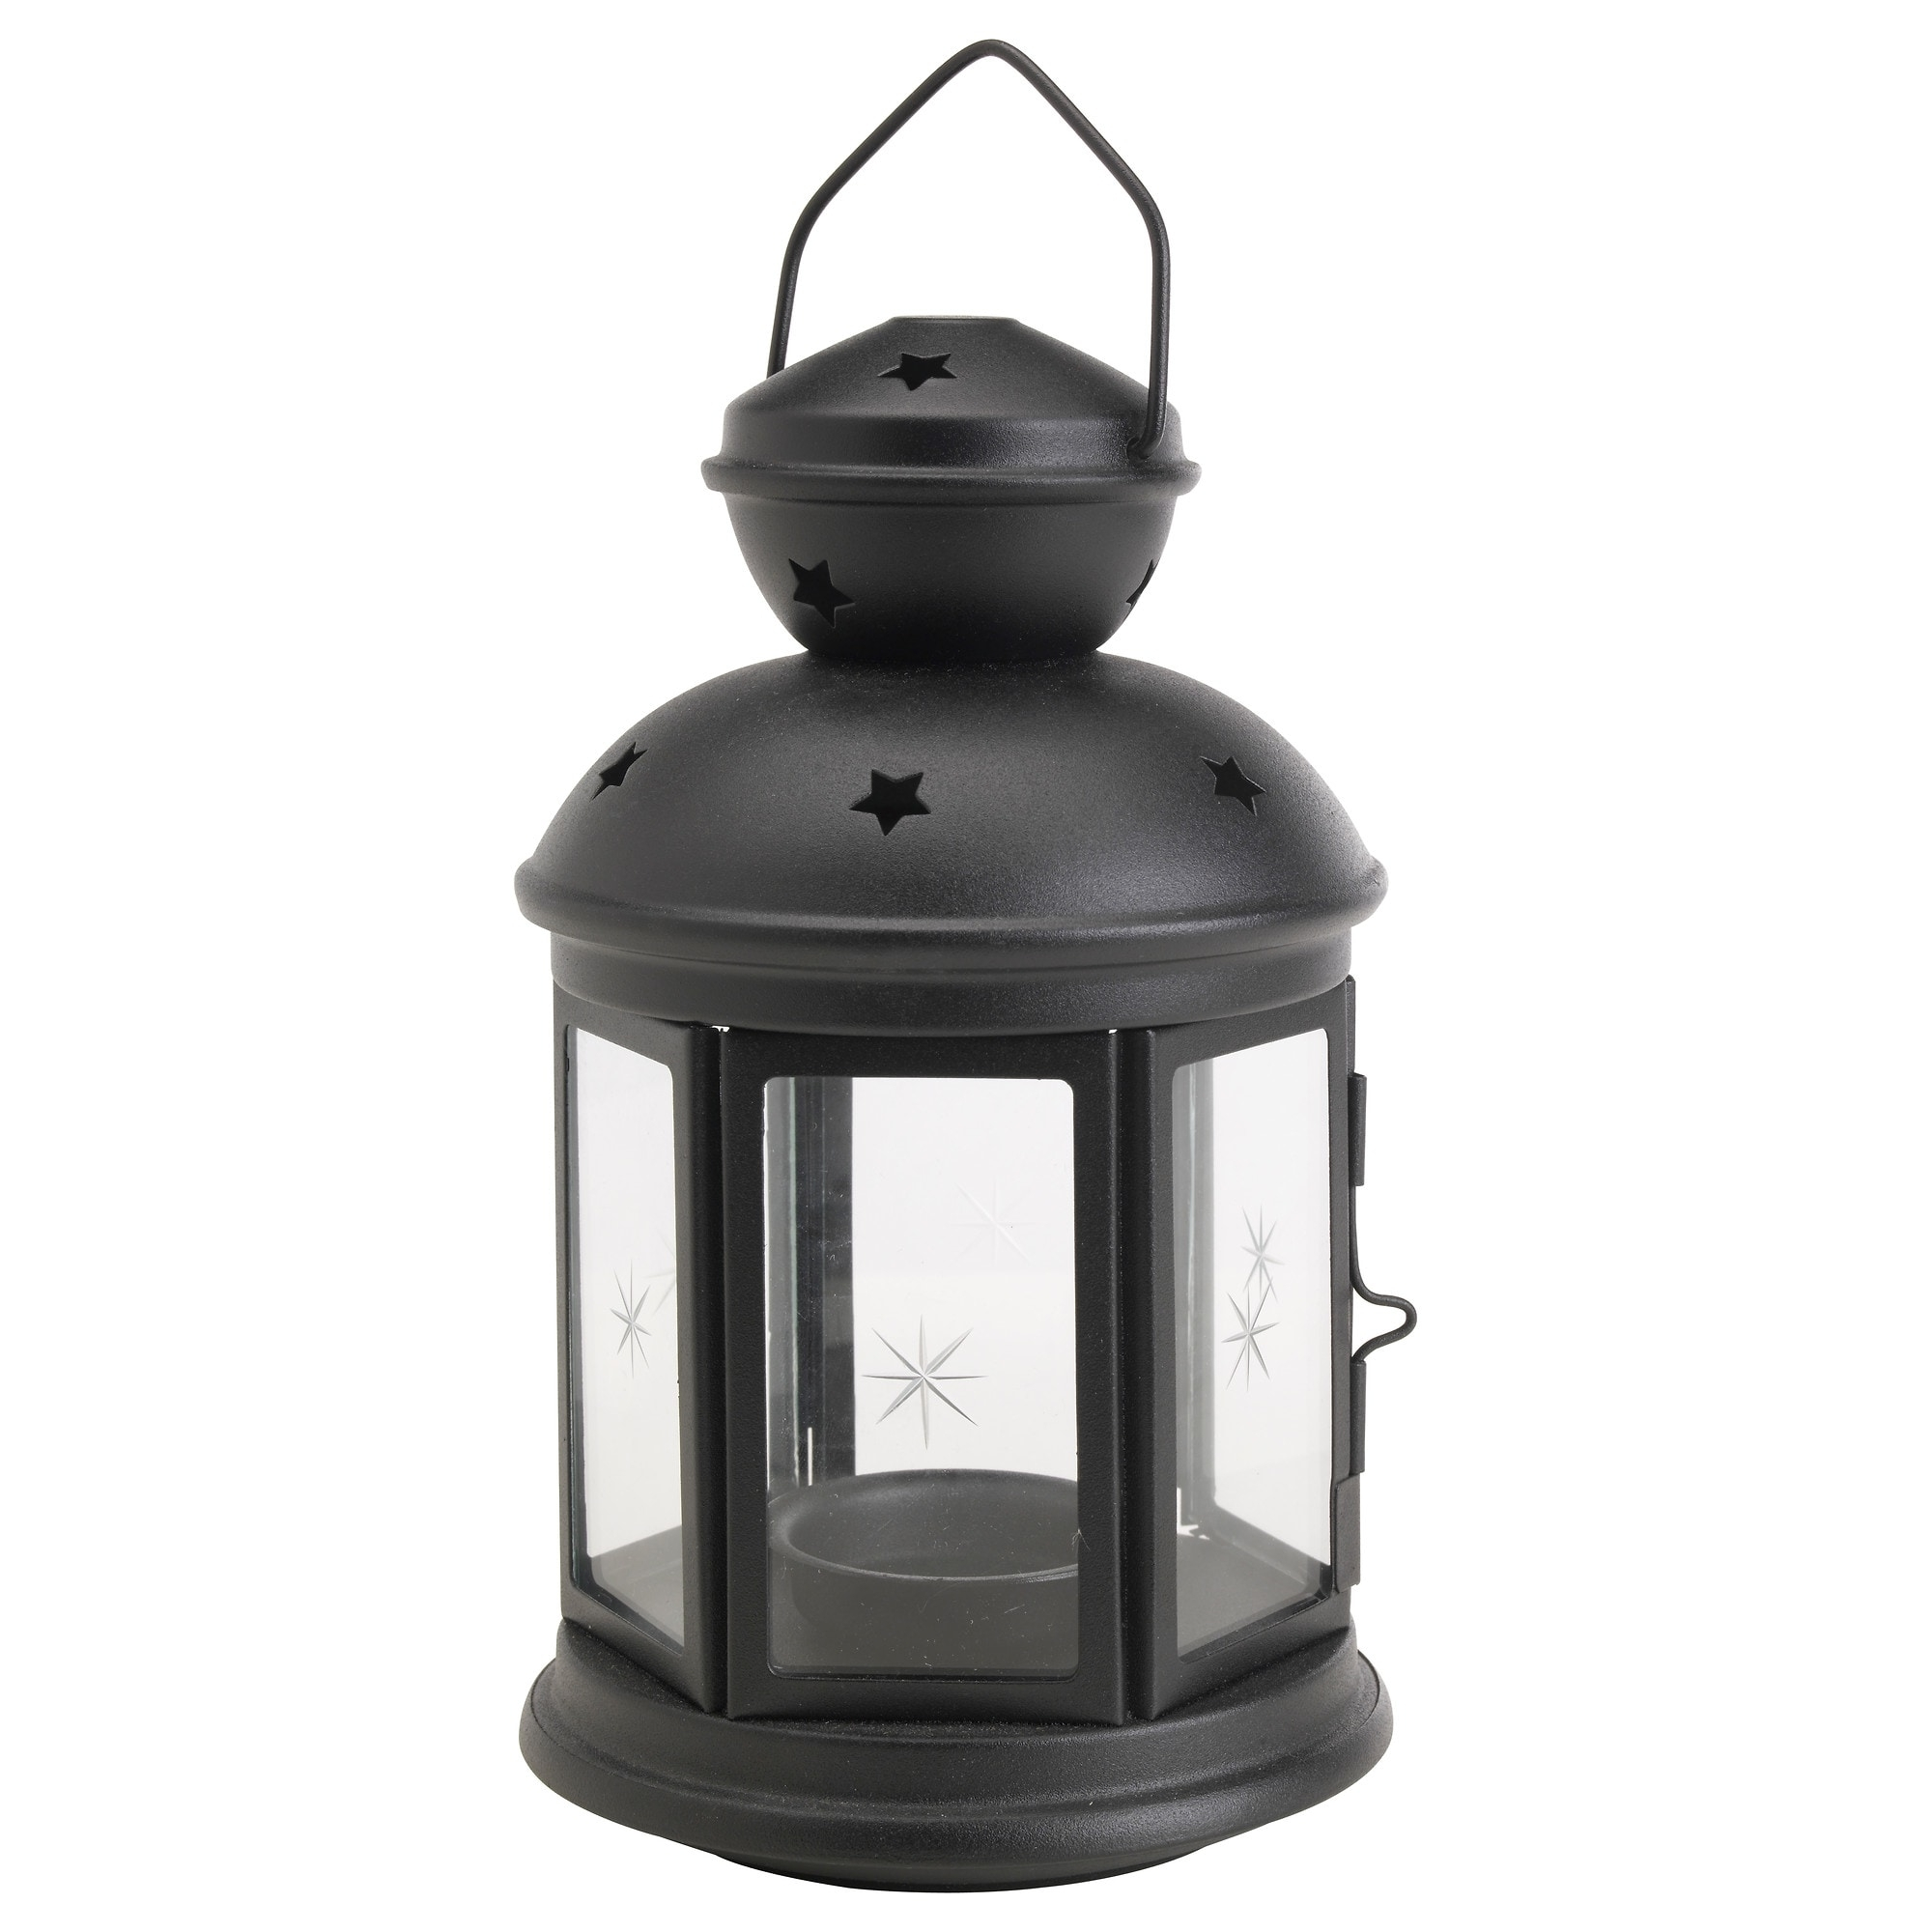 Rotera Lantern For Tealight In/outdoor Black 21 Cm – Ikea Throughout Most Up To Date Outdoor Orange Lanterns (View 11 of 20)